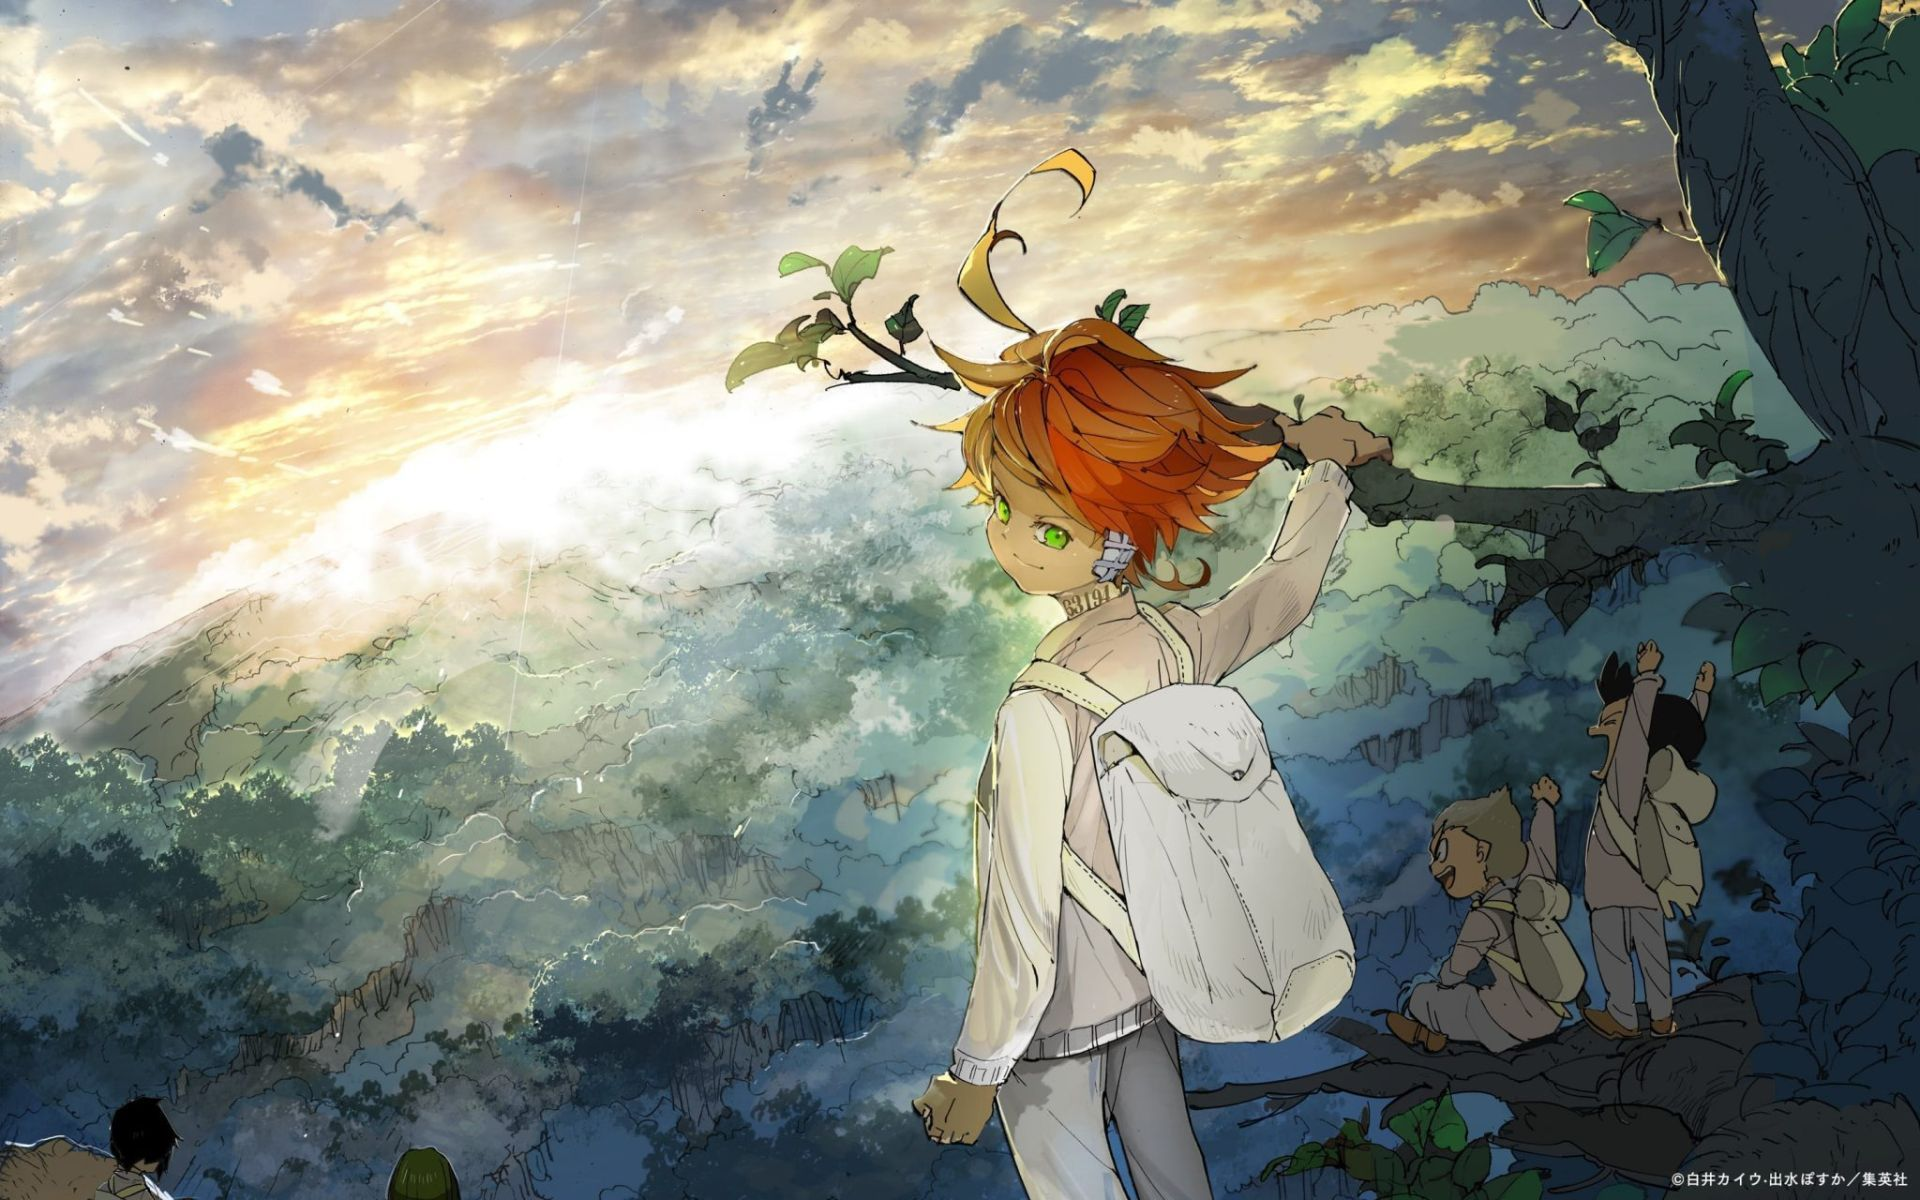 The Highly Anticipated Anime THE PROMISED NEVERLAND Will